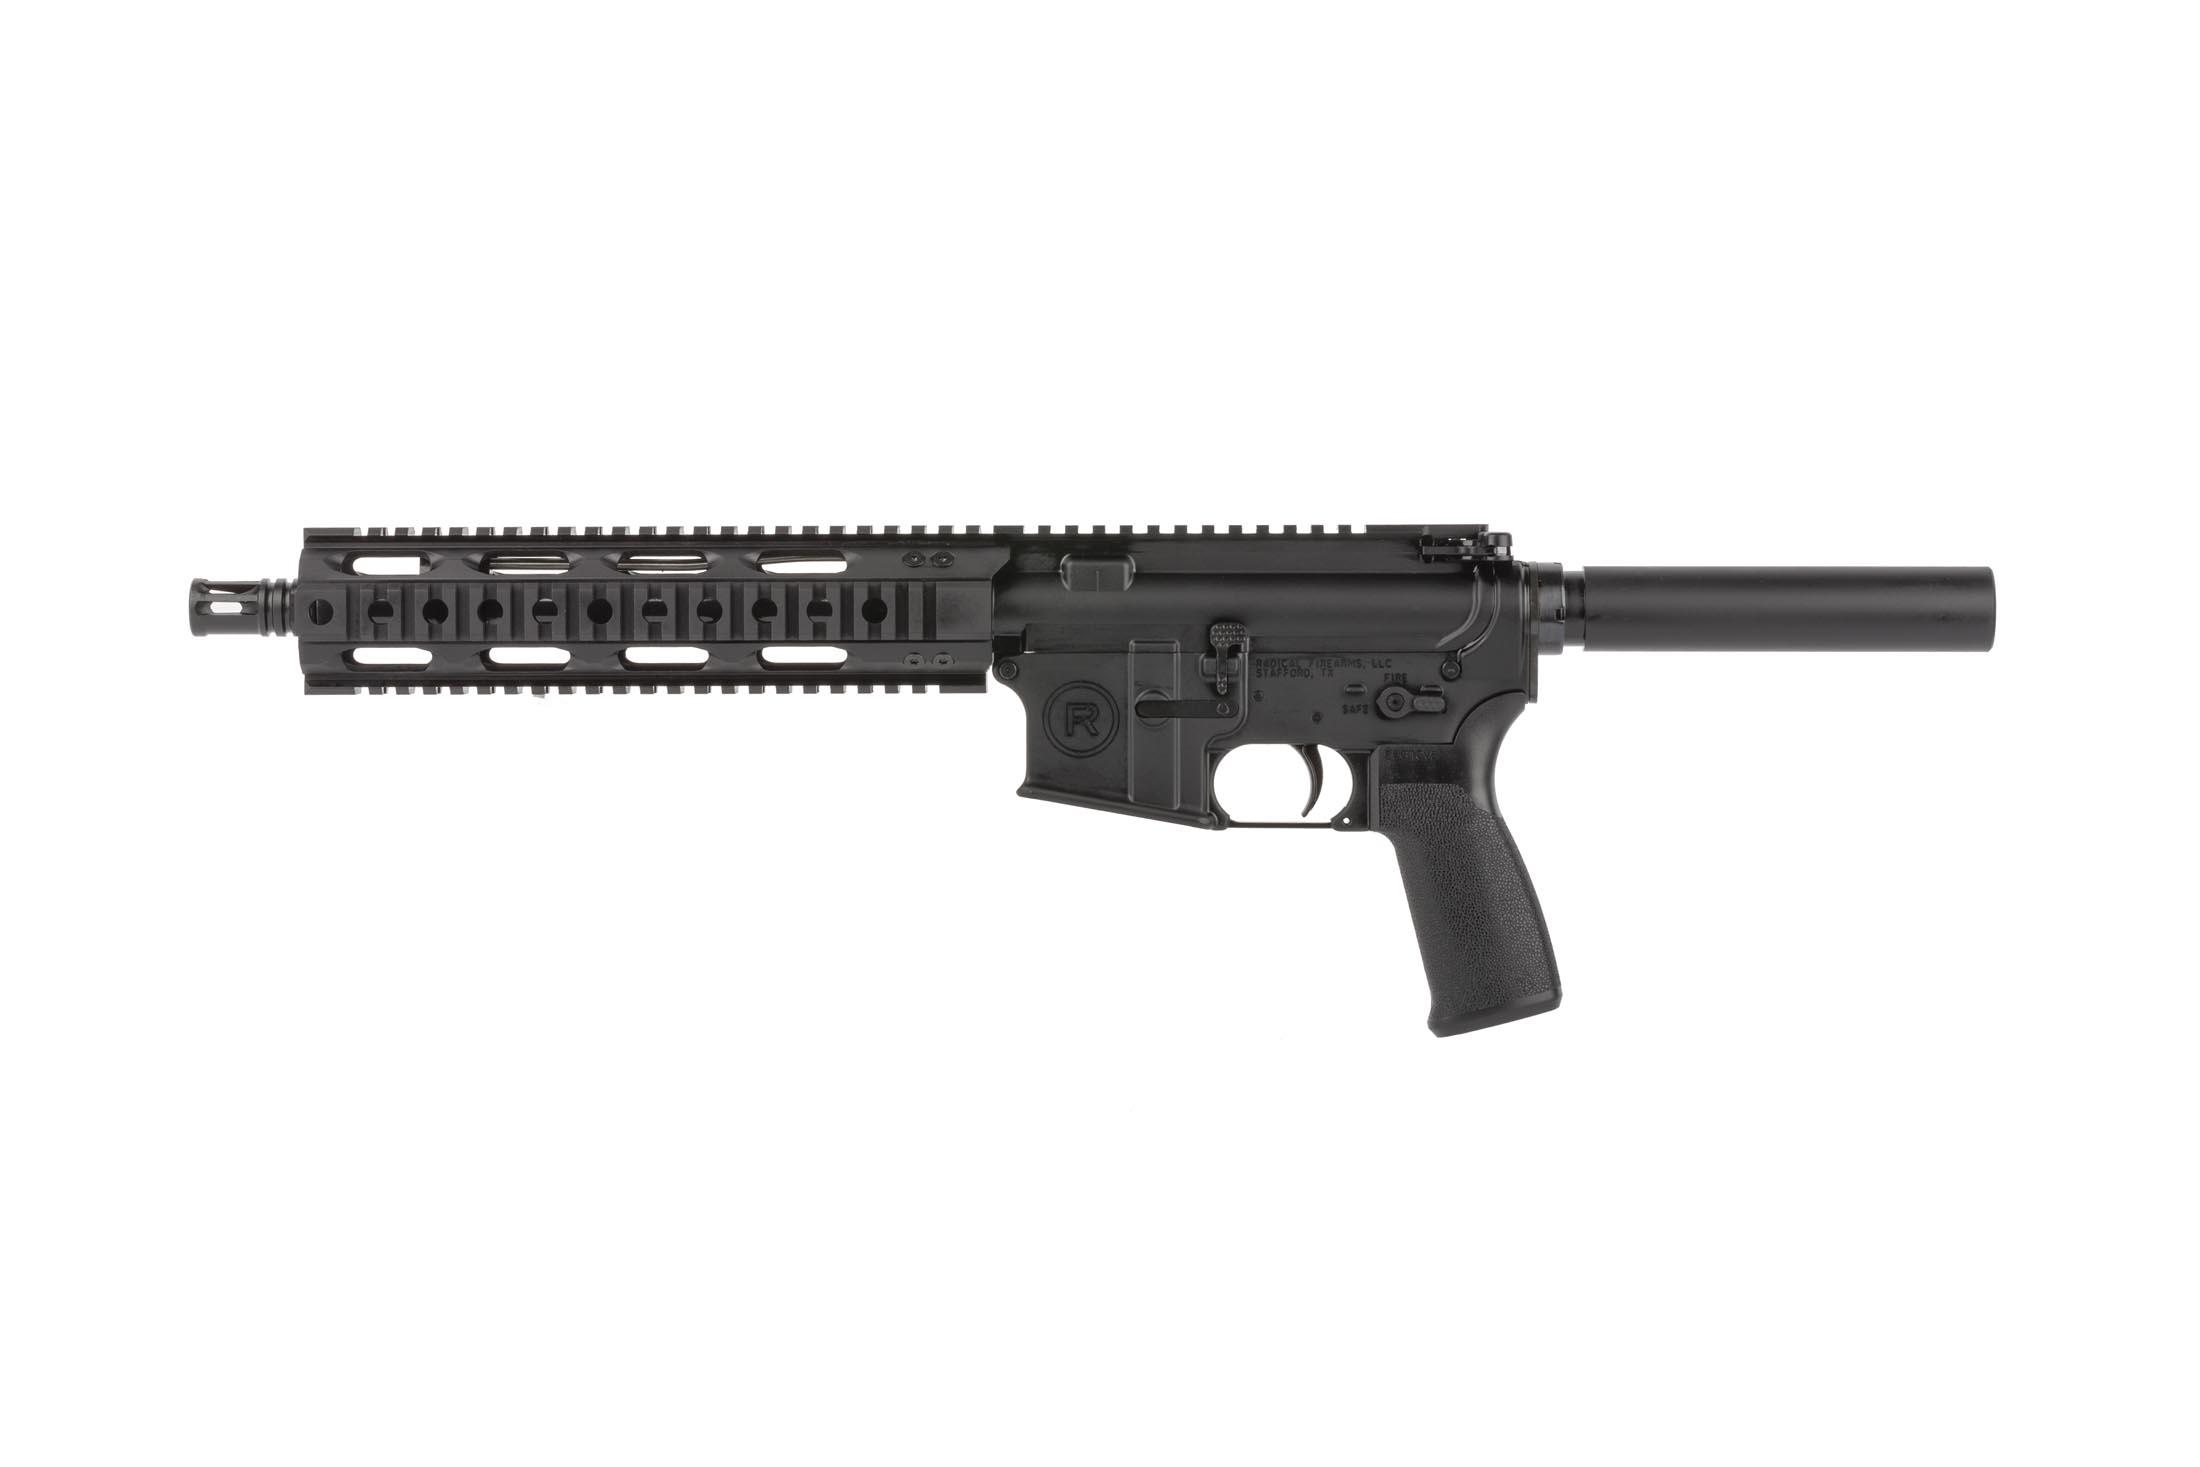 Radical Firearms 5.56 NATO AR15 pistol with 10.5in barrel has a lightweight free float quad rail handguard